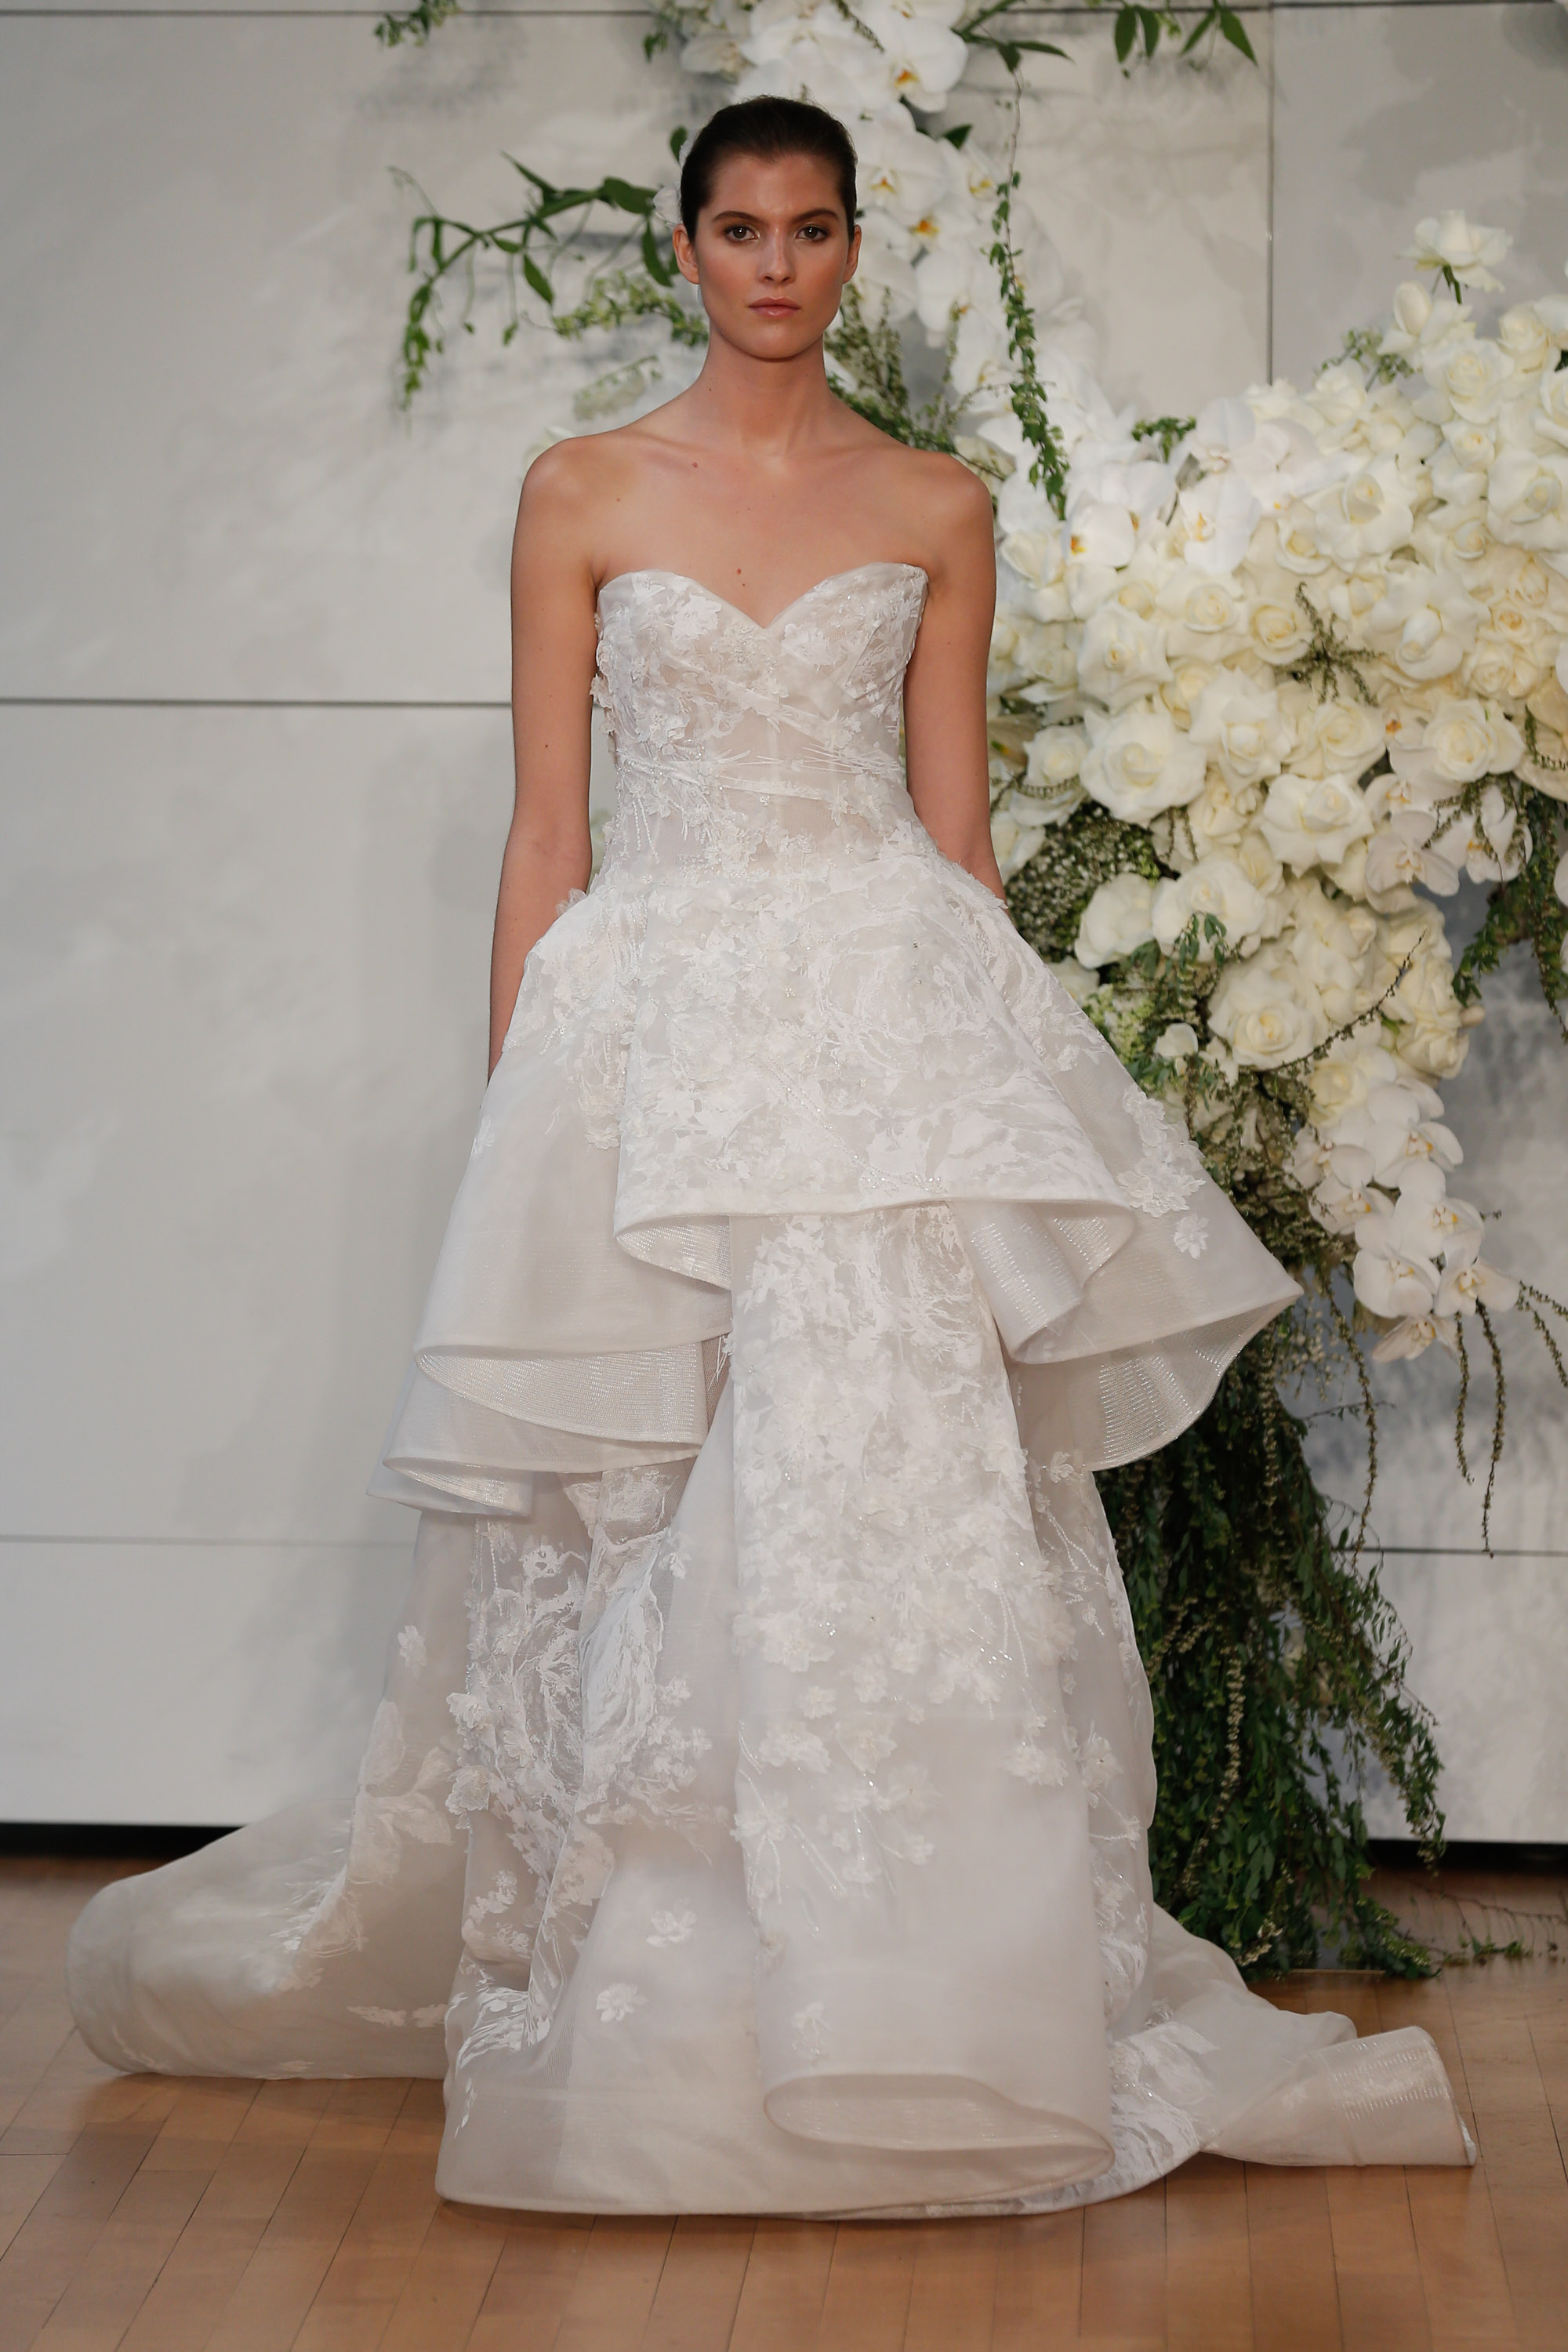 The best wedding dresses from new york bridal fashion week for New york wedding dresses online